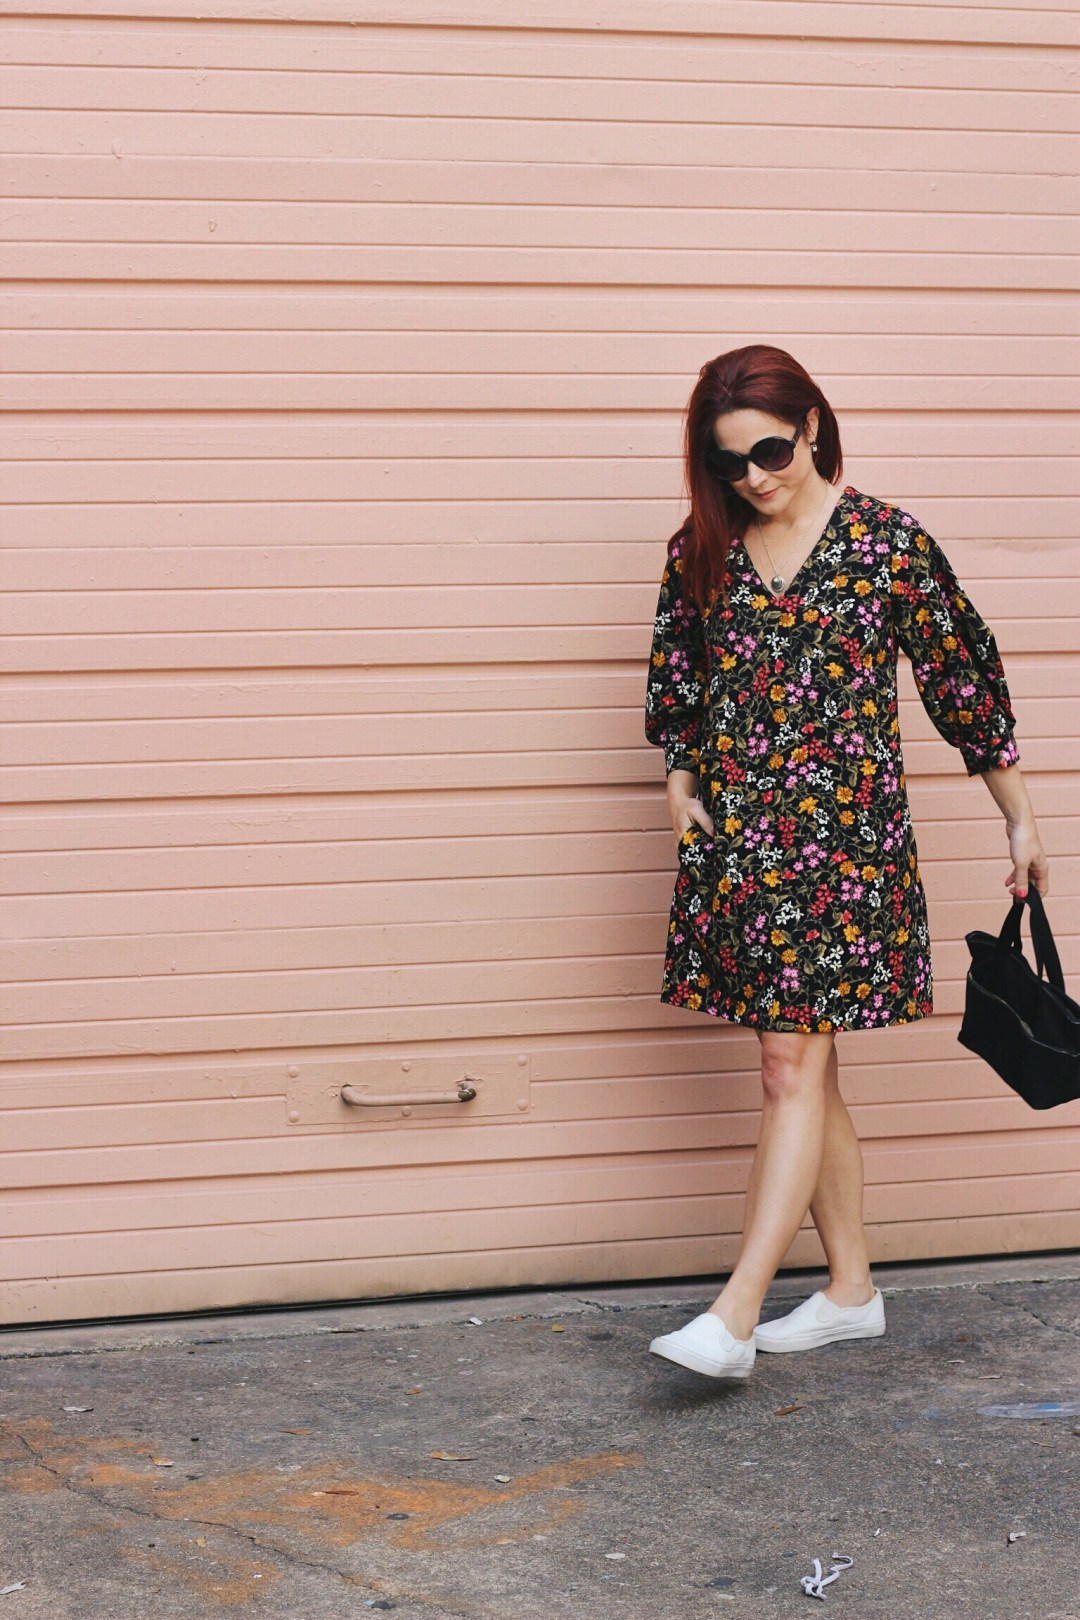 dresses, floral dresses, zara, spring fashion, spring outfits, sneakers with dresses, casual style, garden ideas, nature walks